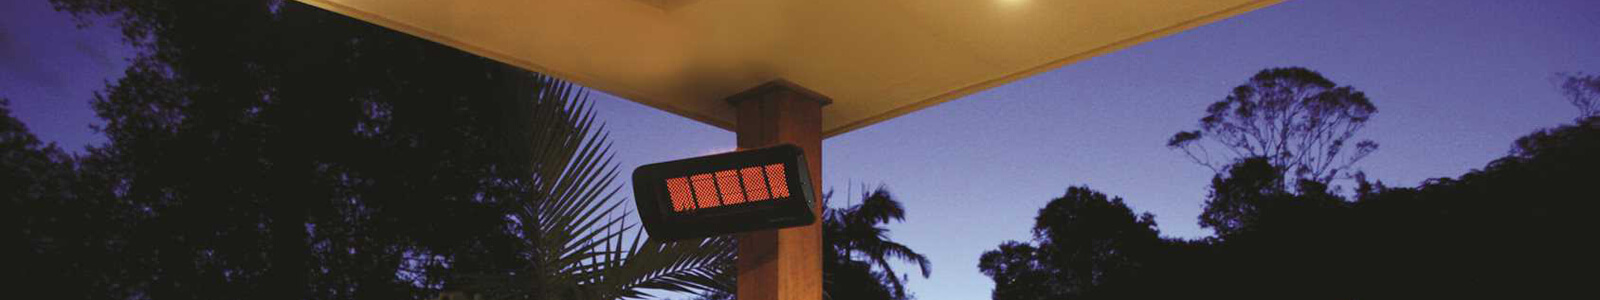 Bromic Heaters & Bromic Patio Heater Sale Banner